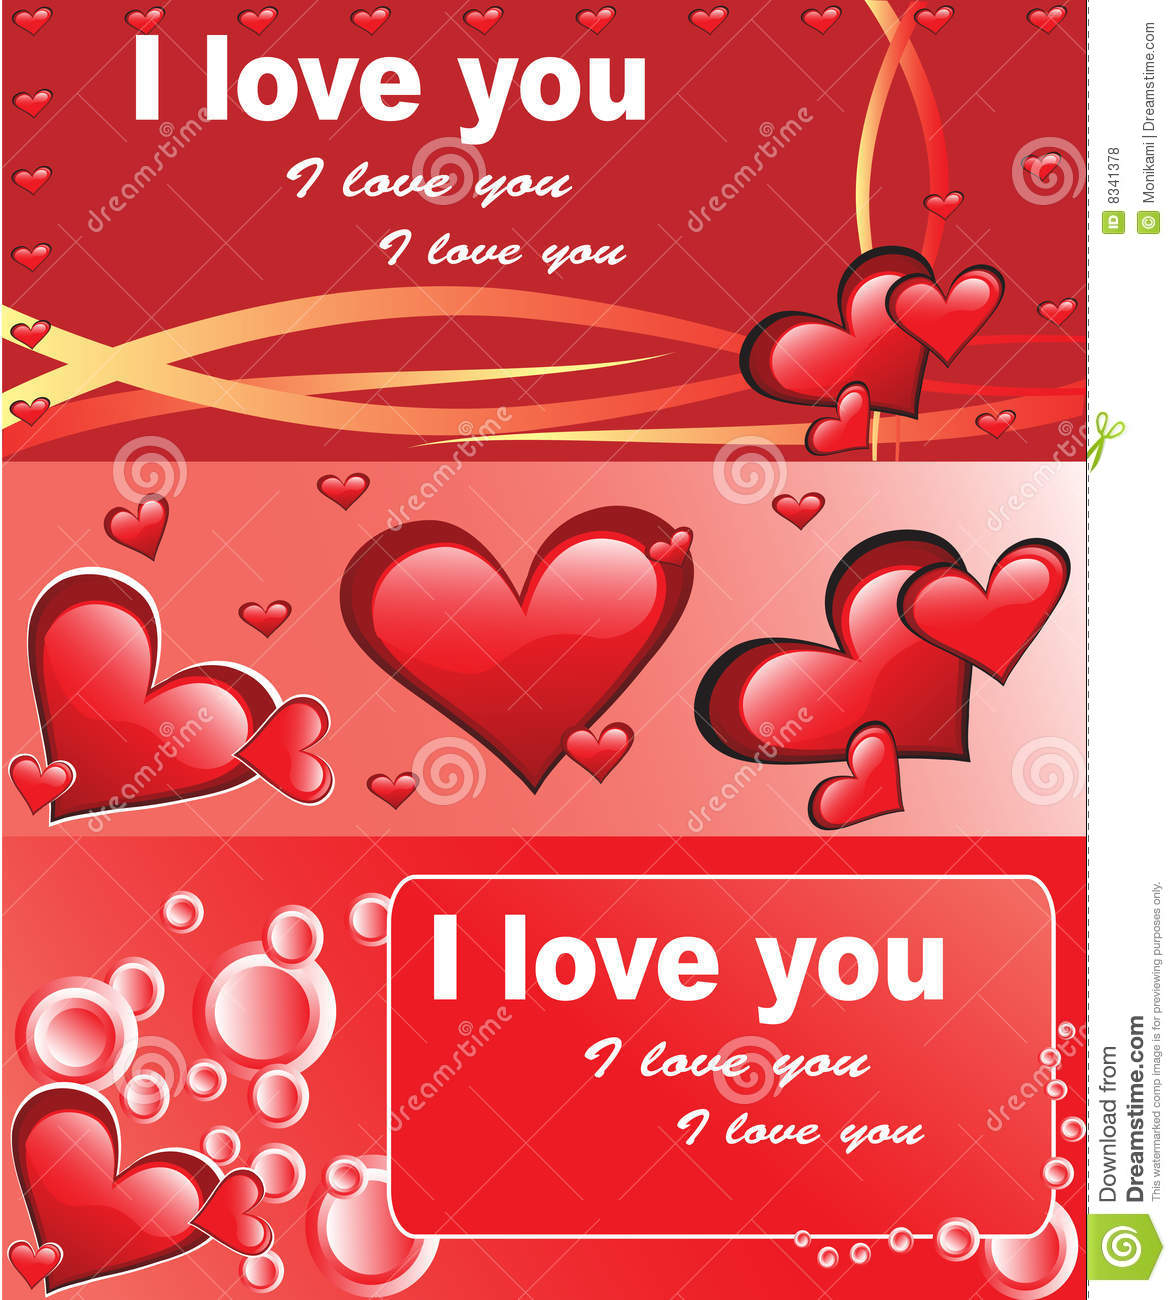 Red Love Cards Royalty Free Stock Photos - Image: 8341378